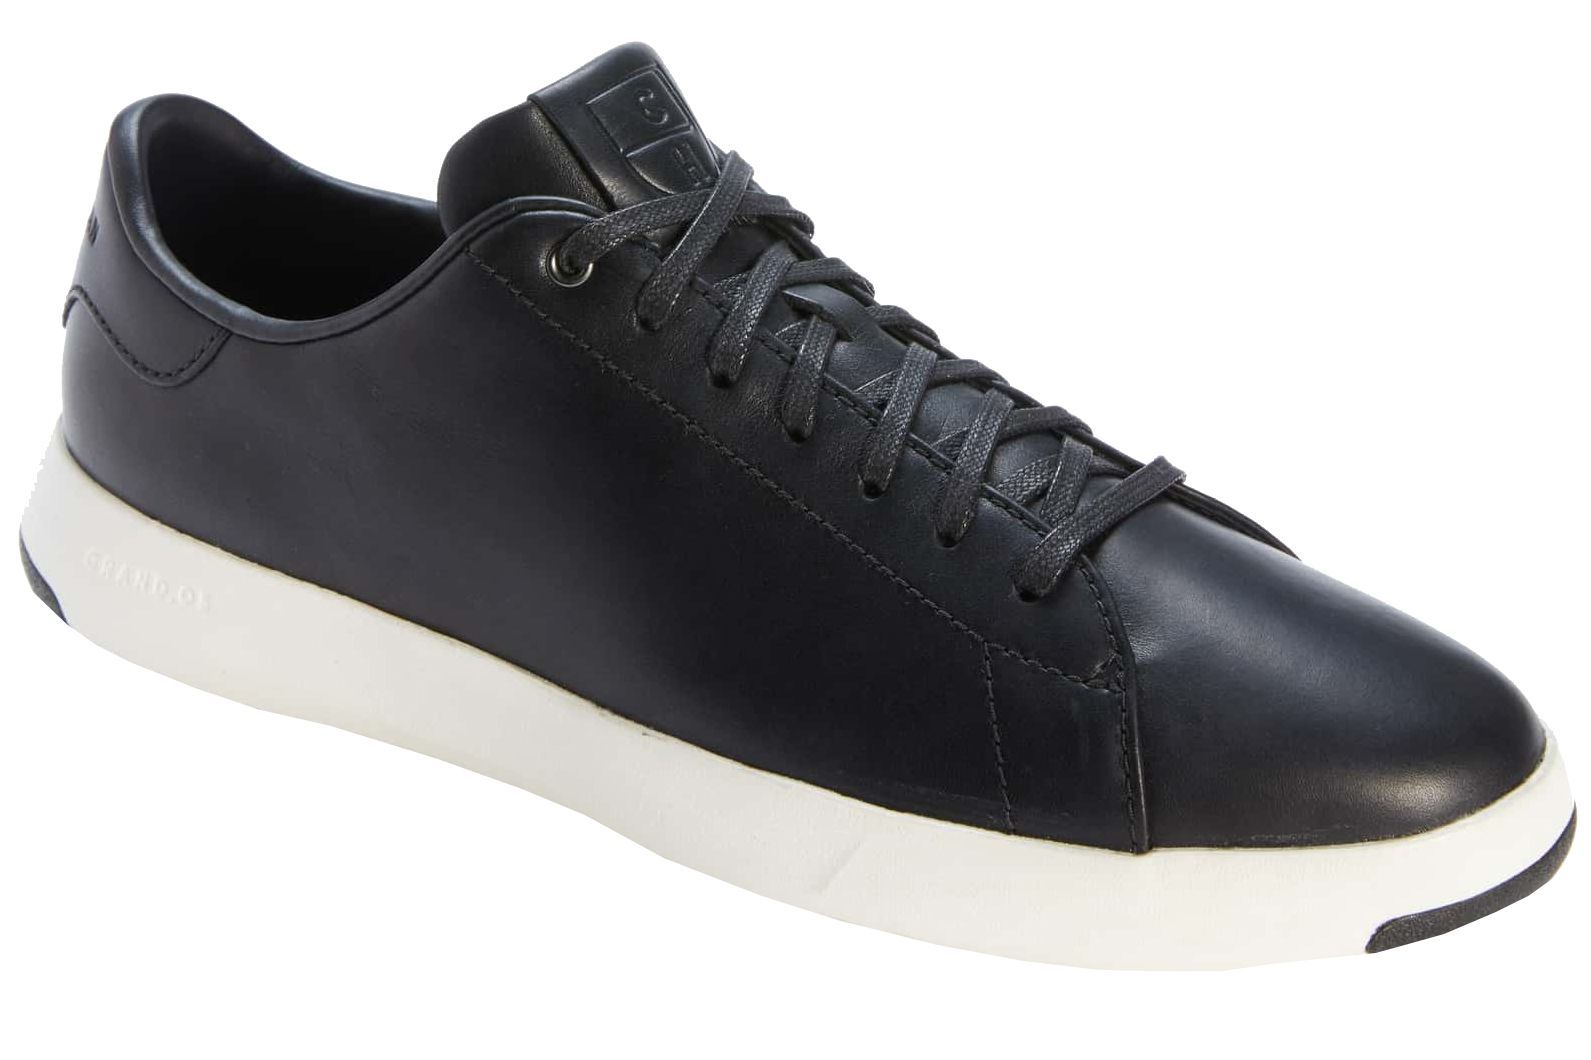 13 Best Suit Shoes for Men - How to Wear a Suit with Sneakers 0719d04ae